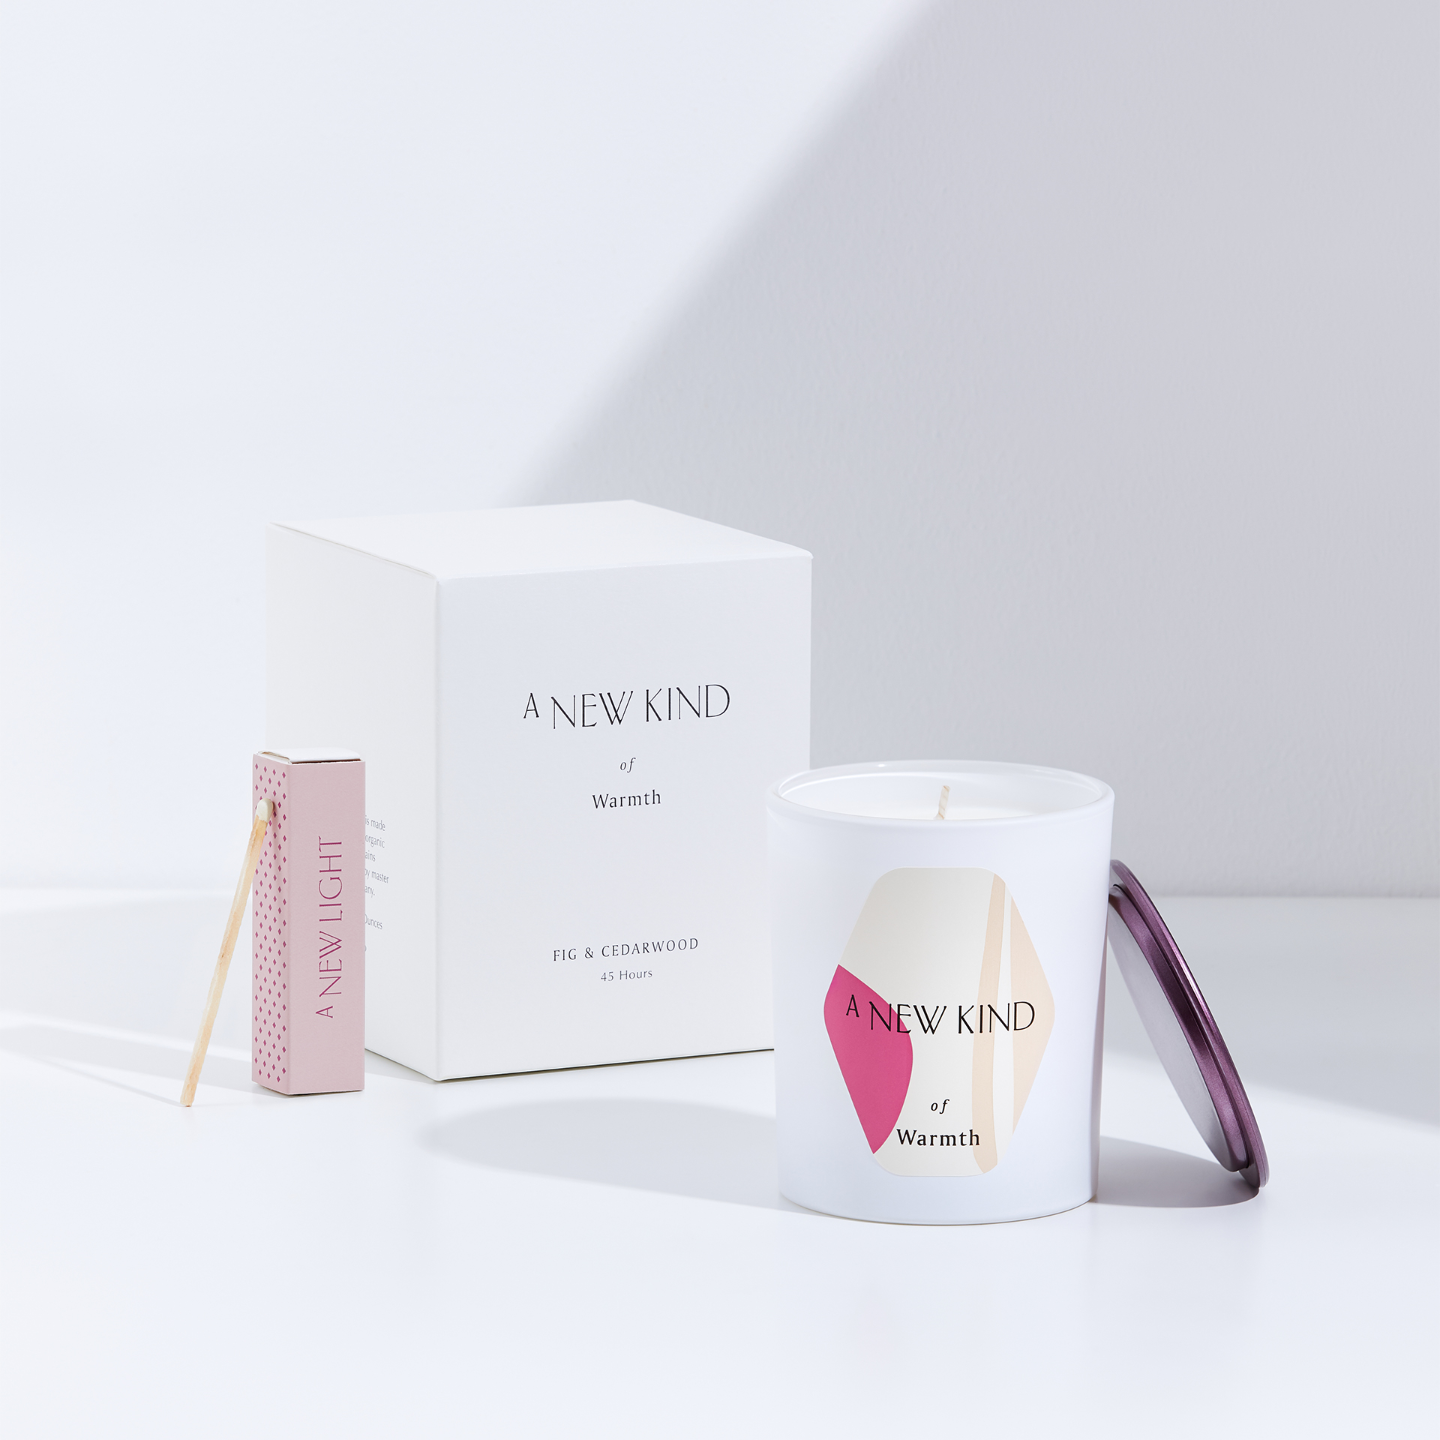 A white candle in the foreground with a pink cover leaning against it and a white candle box in the background with a pink match box beside it. The candle is labeled with a hexagon sticker. The sticker has a white base with abstract prints in pink and beige. The words A new kind of warmth is printed on it. The same words can be seen on the white box behind.